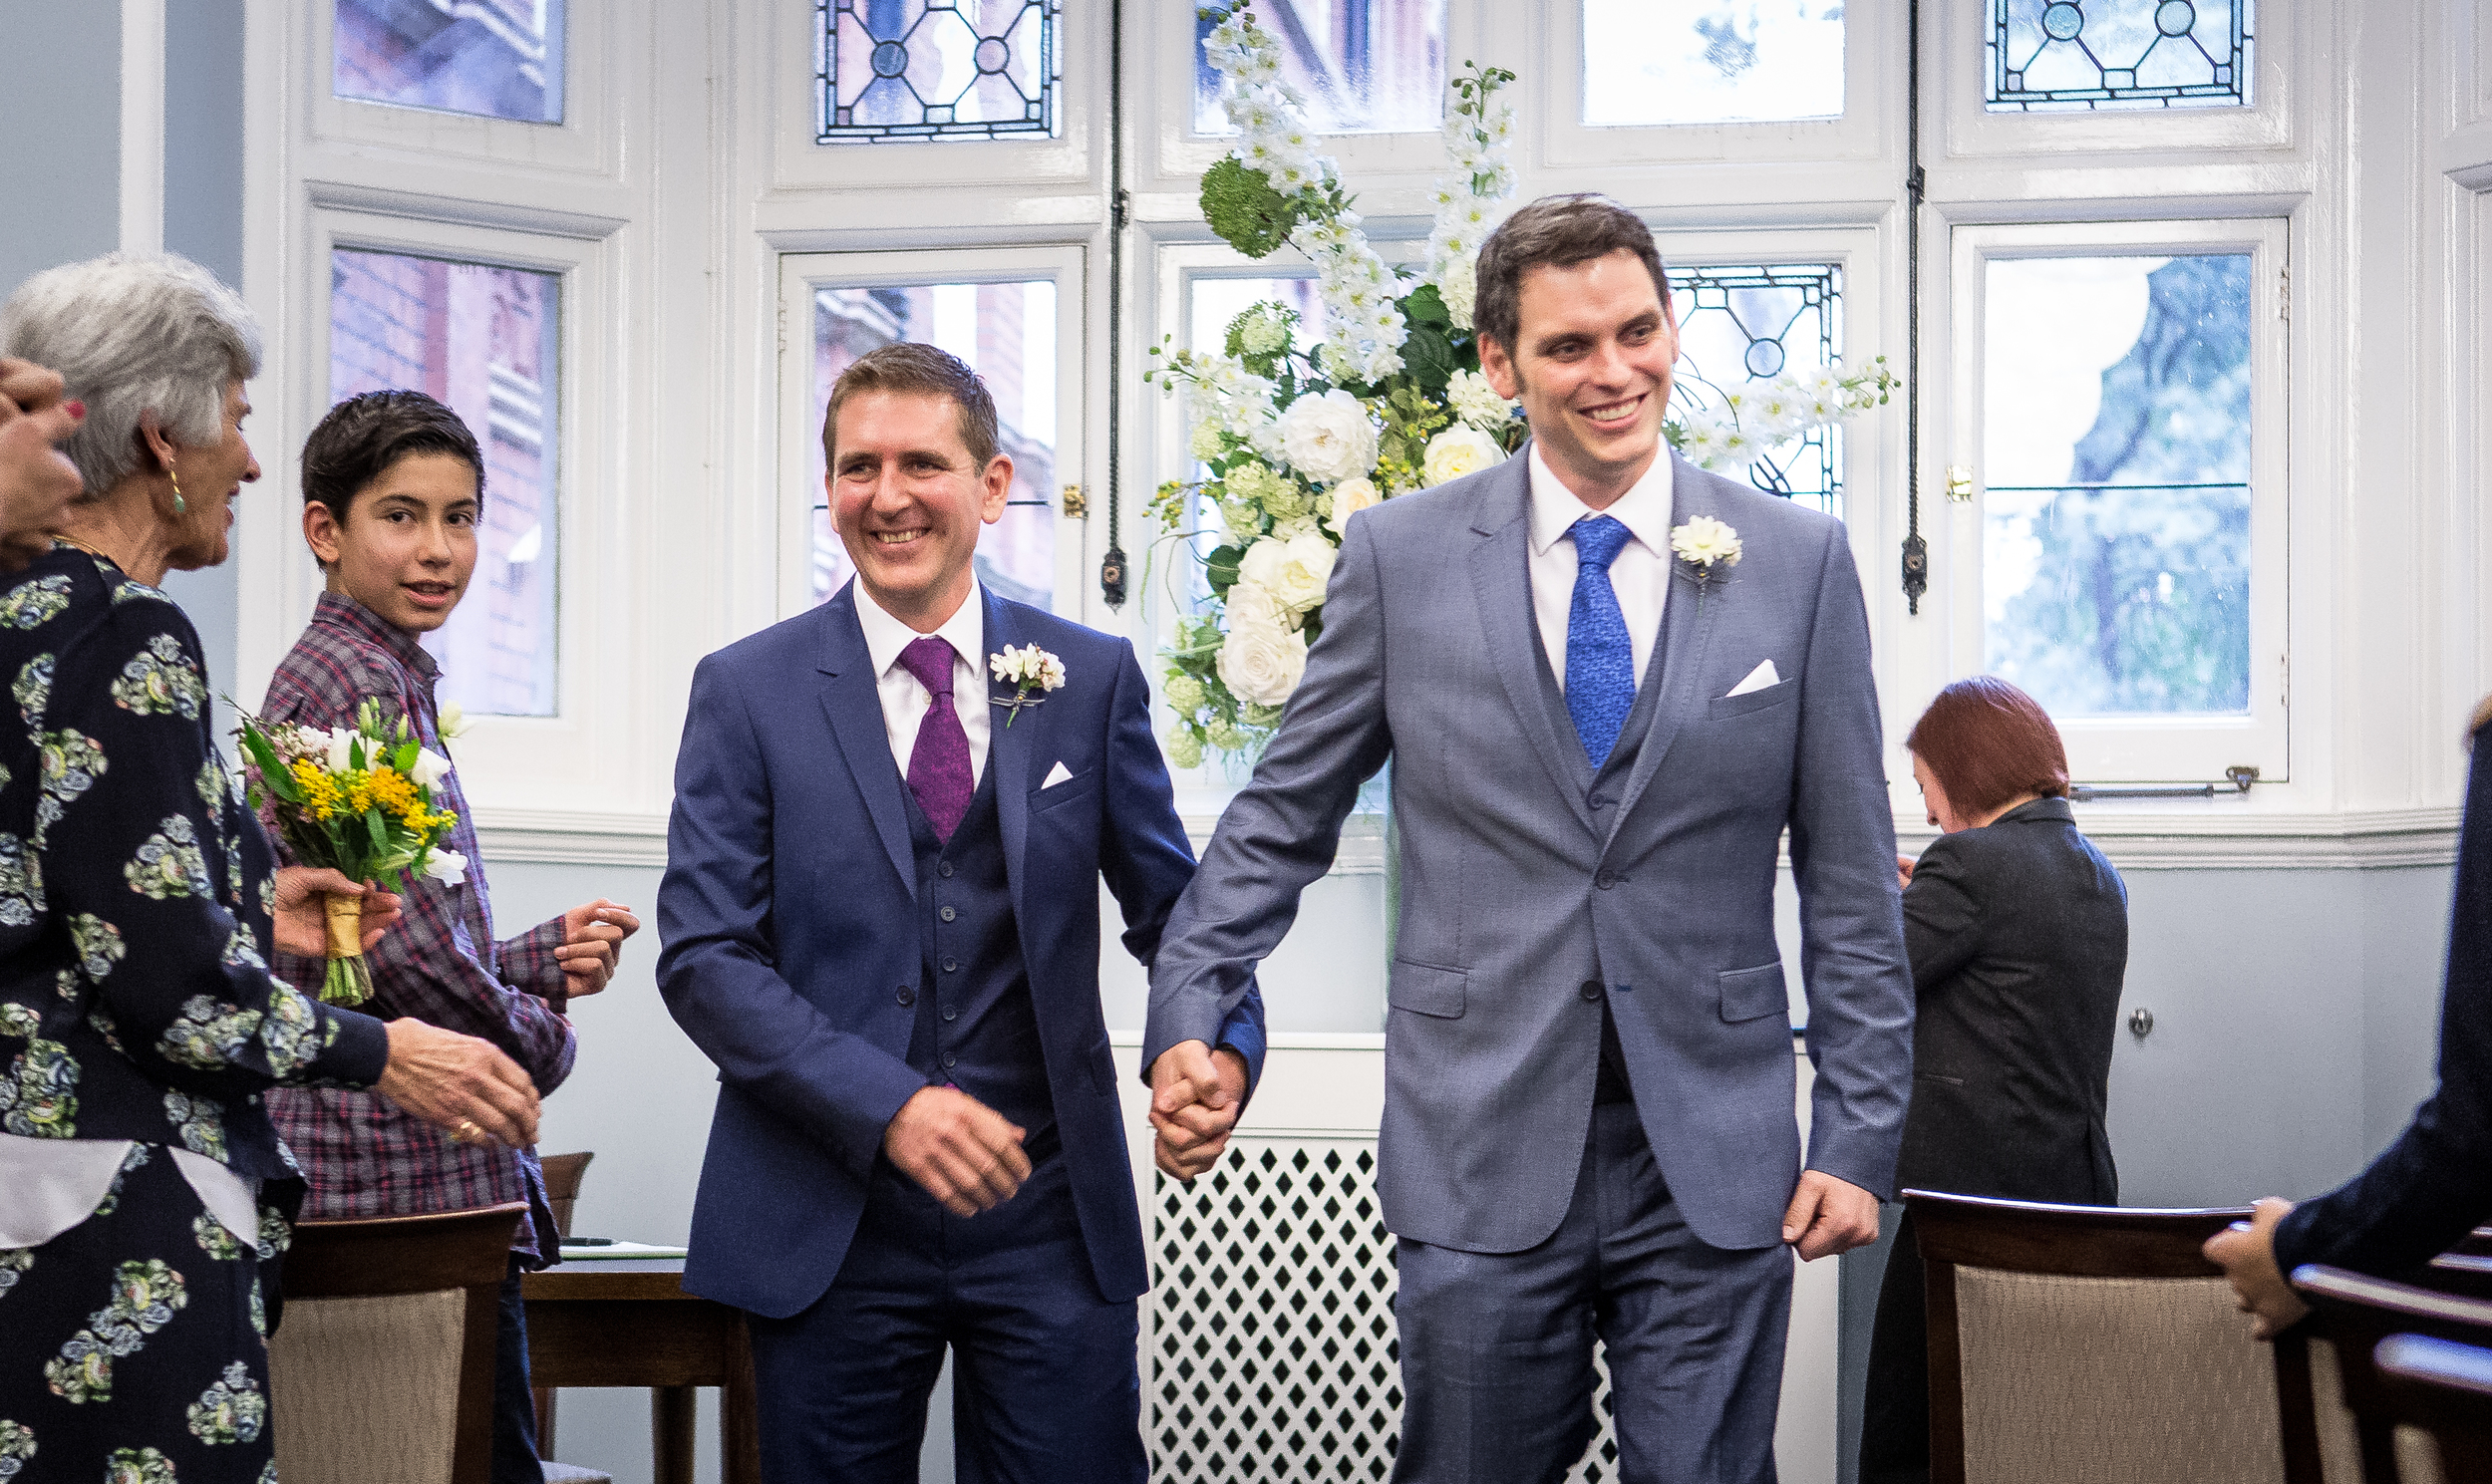 mayfair wedding same sex marriage london photography 7